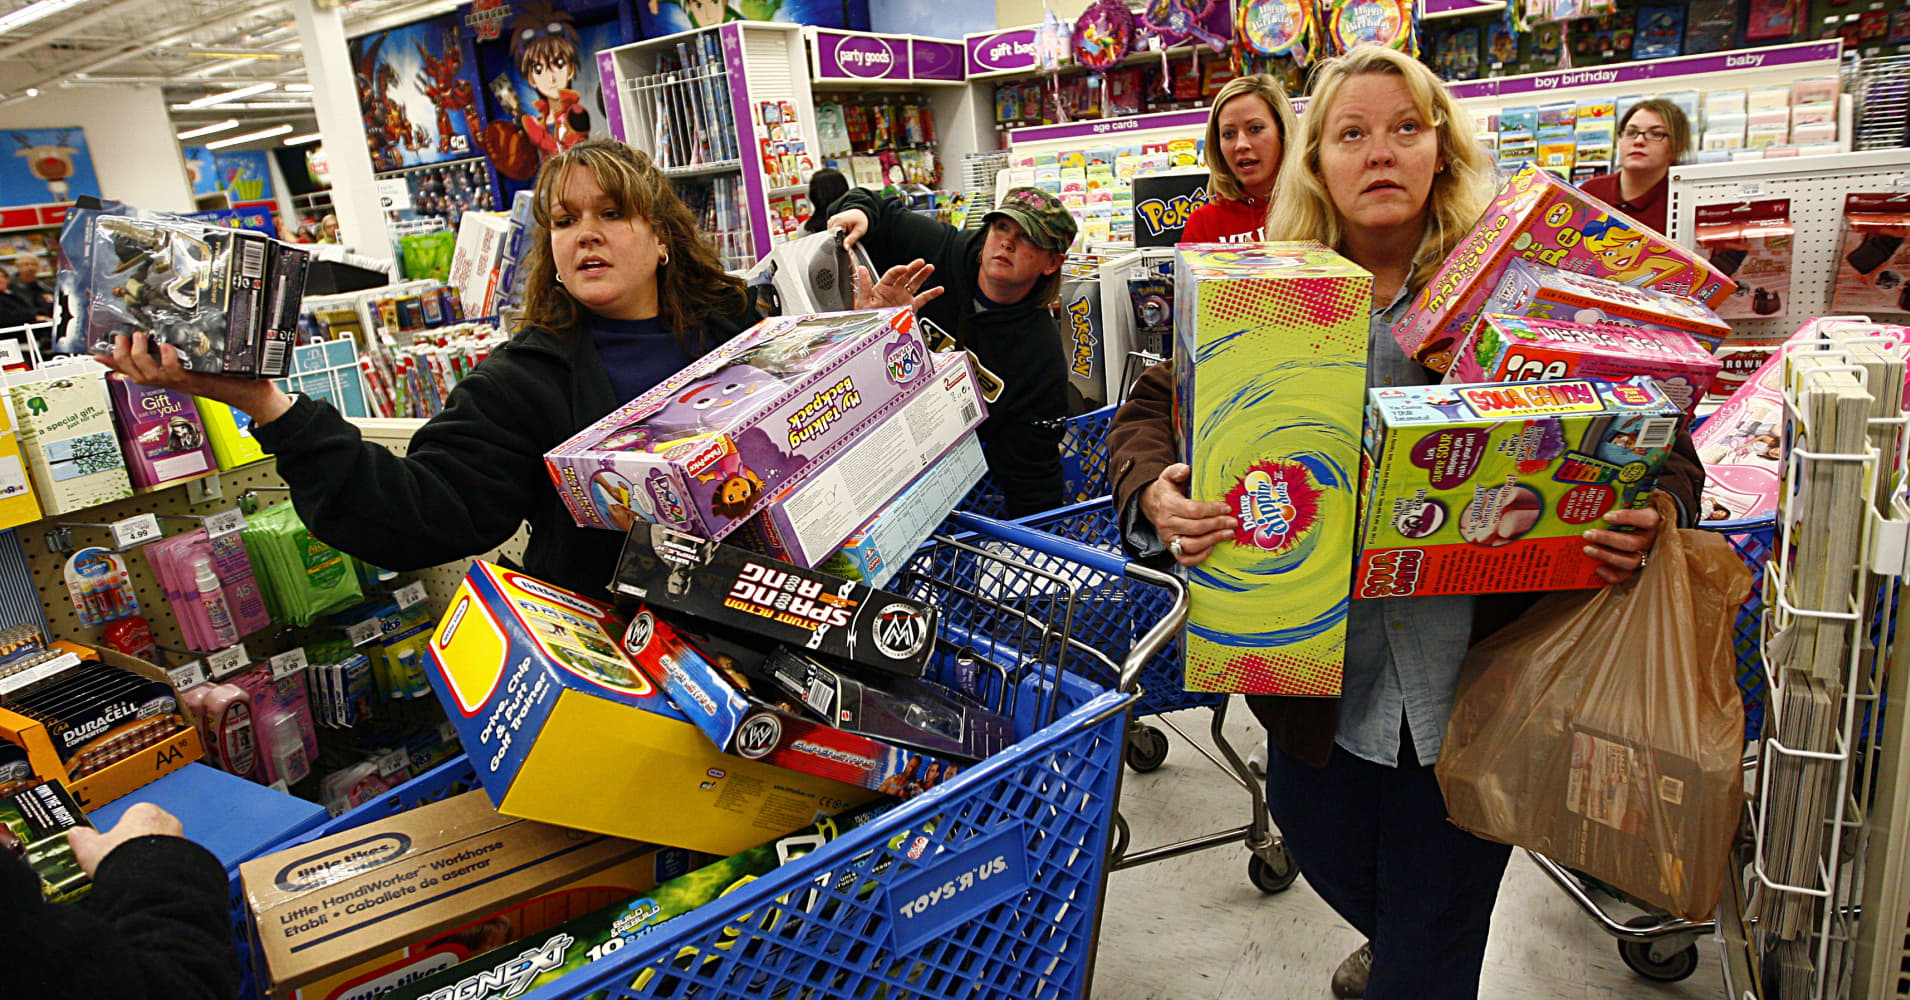 Shoppers wait in line while shopping at Toys'R'Us during the Black Friday sales event on November 27, 2009 in Fort Worth, Texas